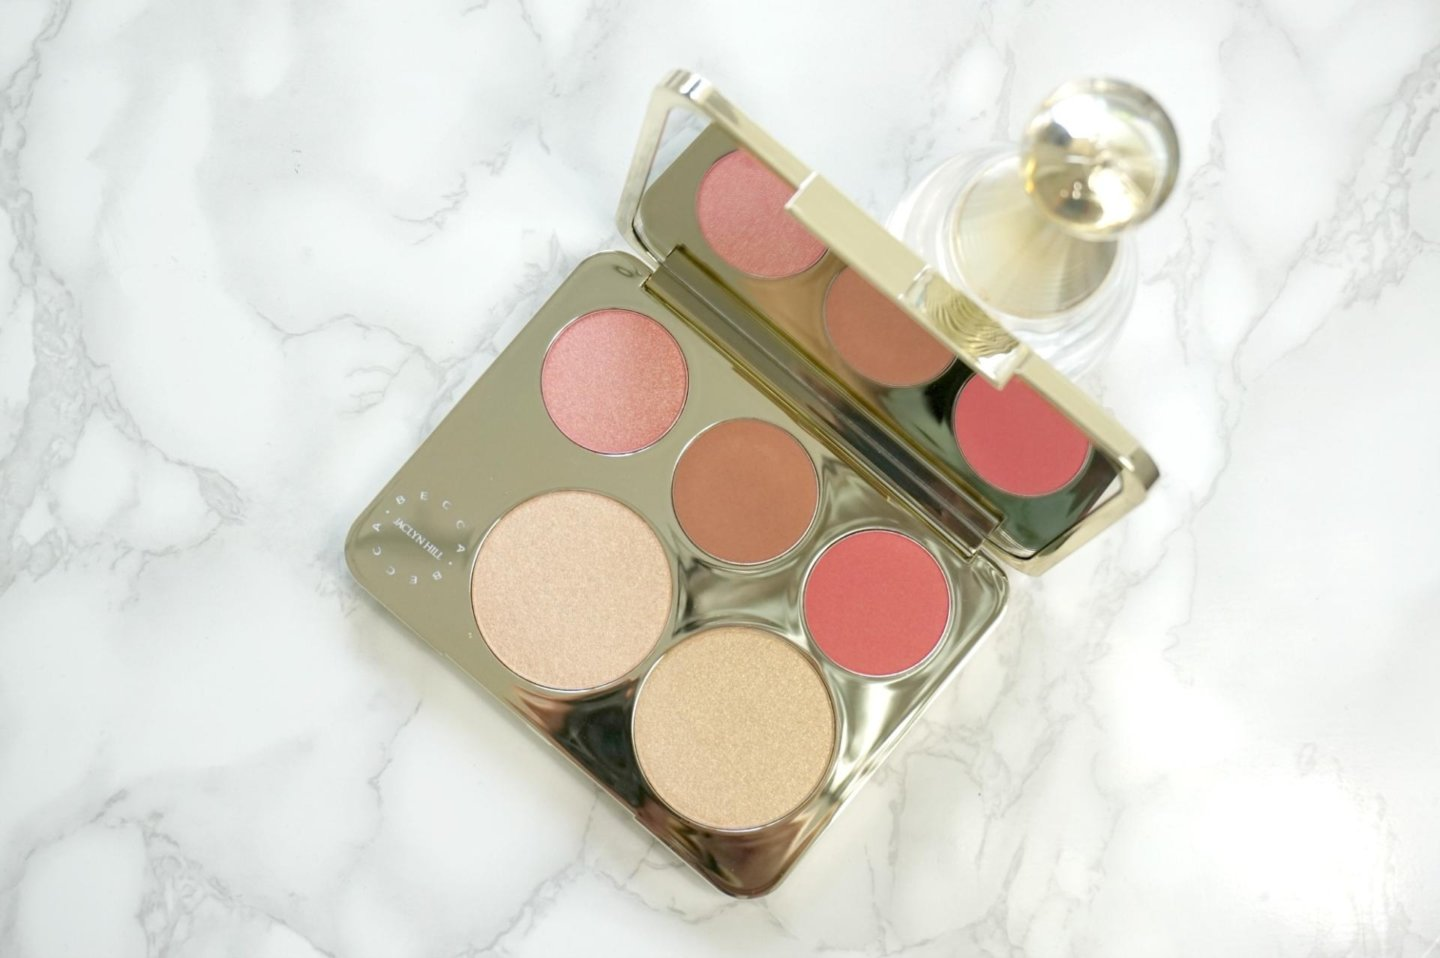 Becca x Jaclyn Hill Champagne Pop Collection Face Palette